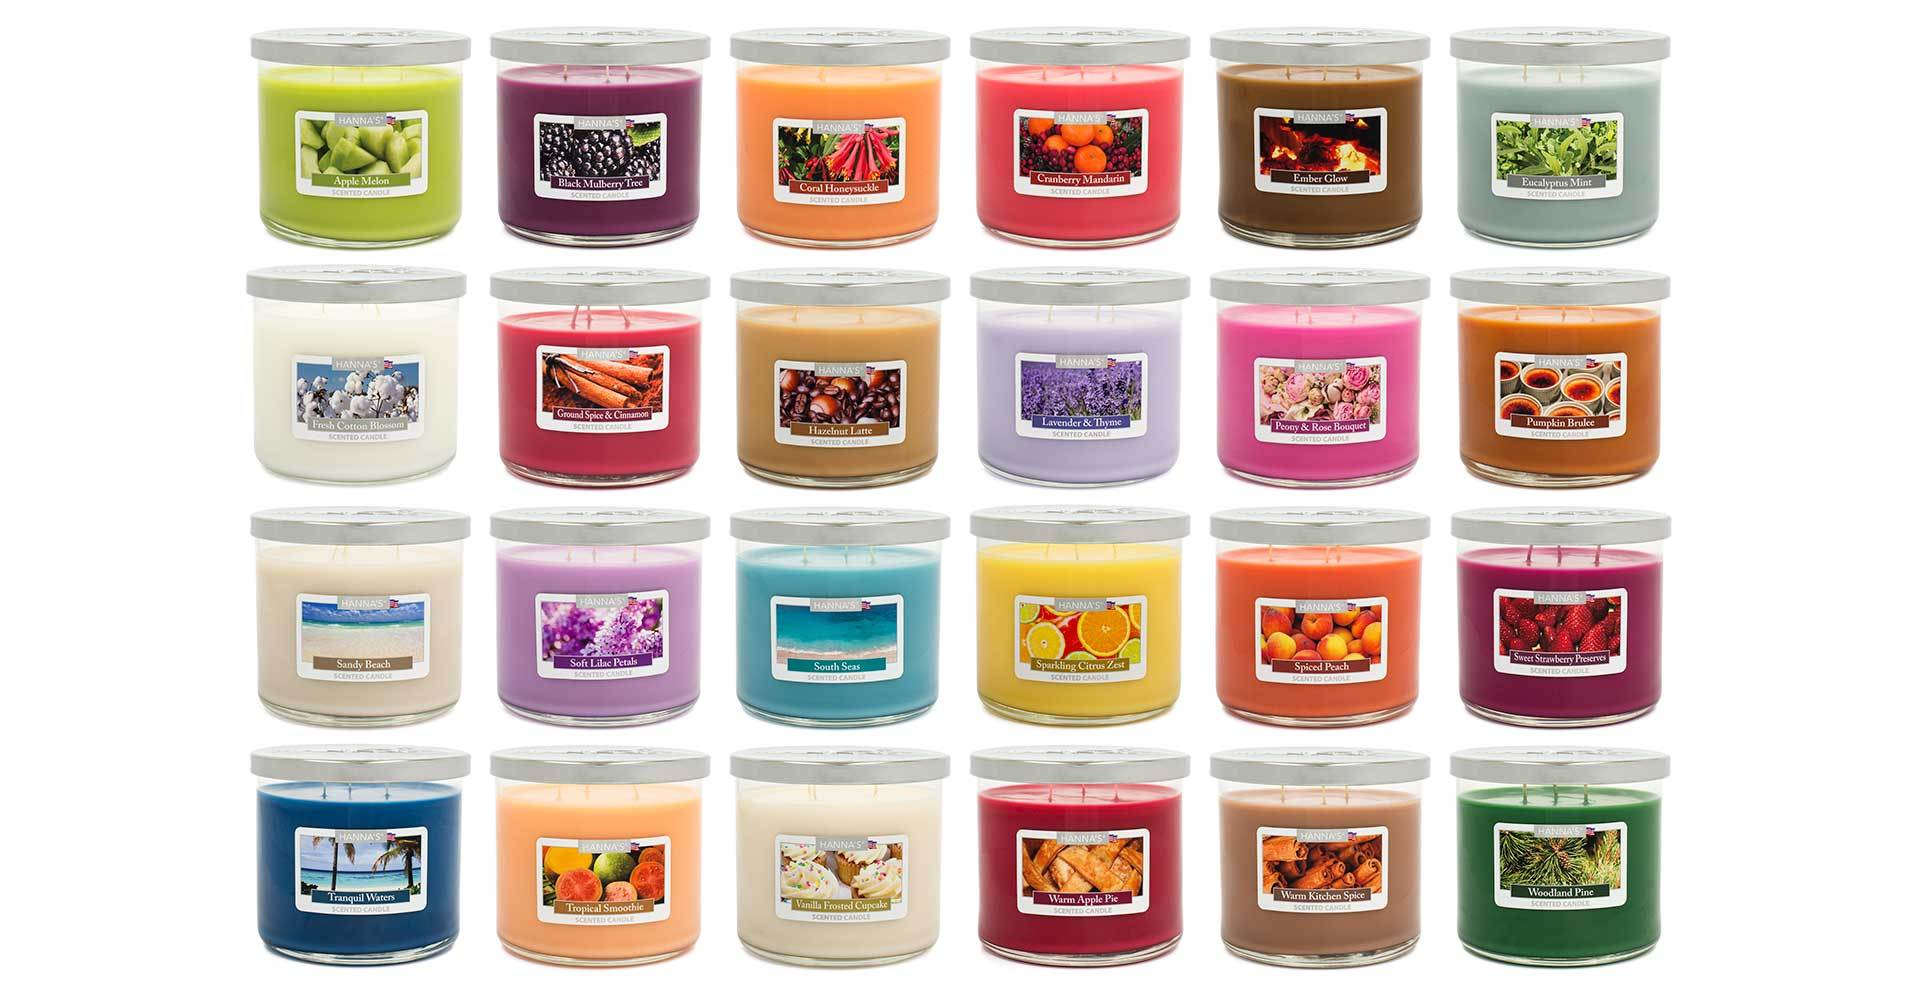 Sparkling Citrus Zest Scented Large 3 wick Candle - Candlemart.com